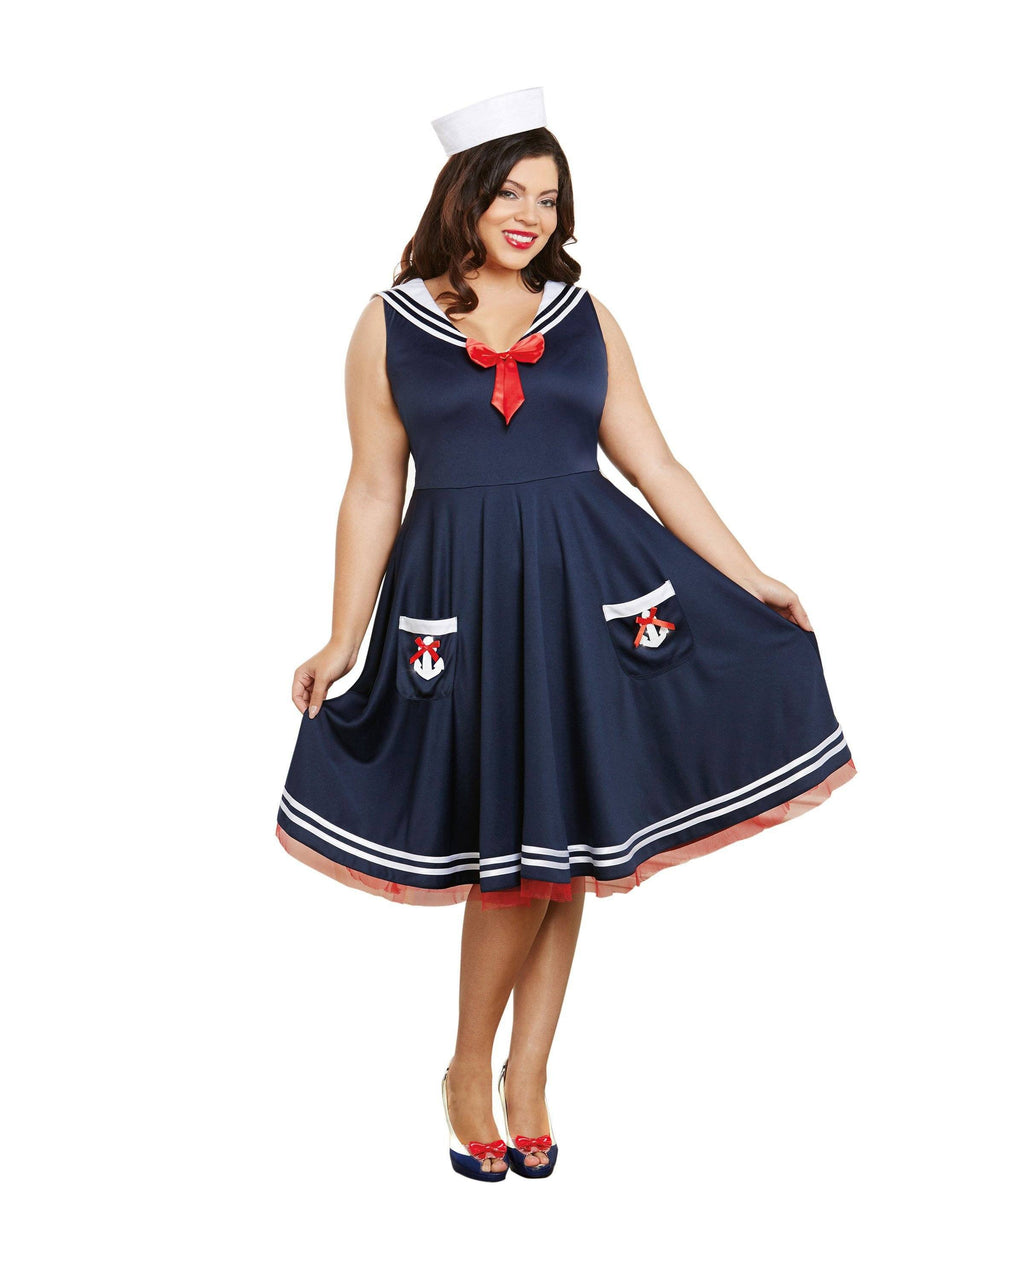 Plus Size All Aboard Women's Costume Dreamgirl Costume